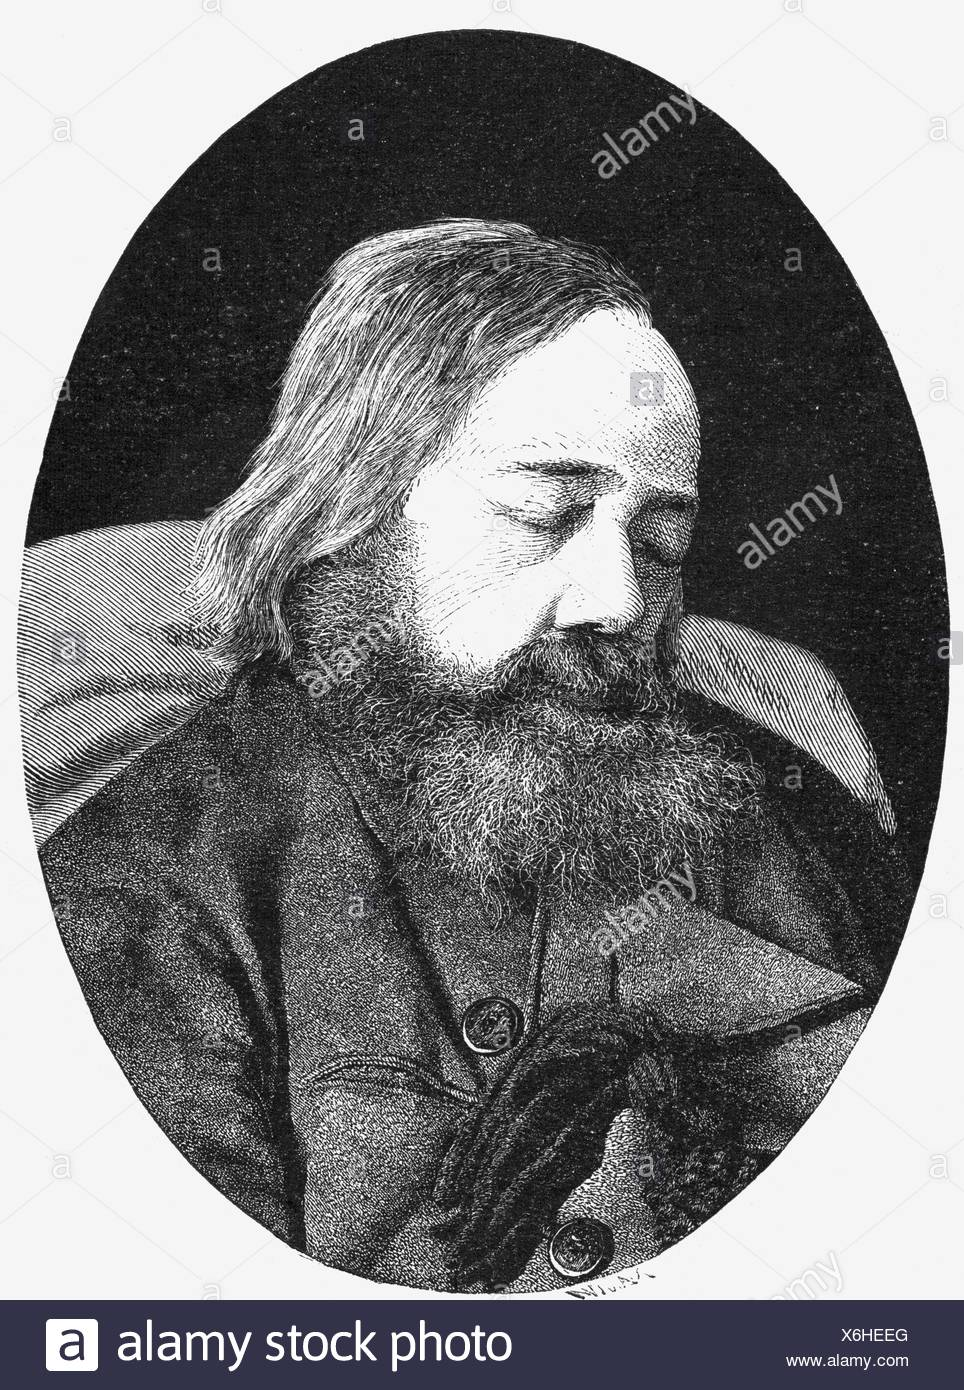 Freiligrath, Ferdinand, 17.6.1810 - 18.3.1876, German poet, portrait of the dead bard, sitting in his armchair, wood engraving, Additional-Rights-Clearances-NA - Stock Image